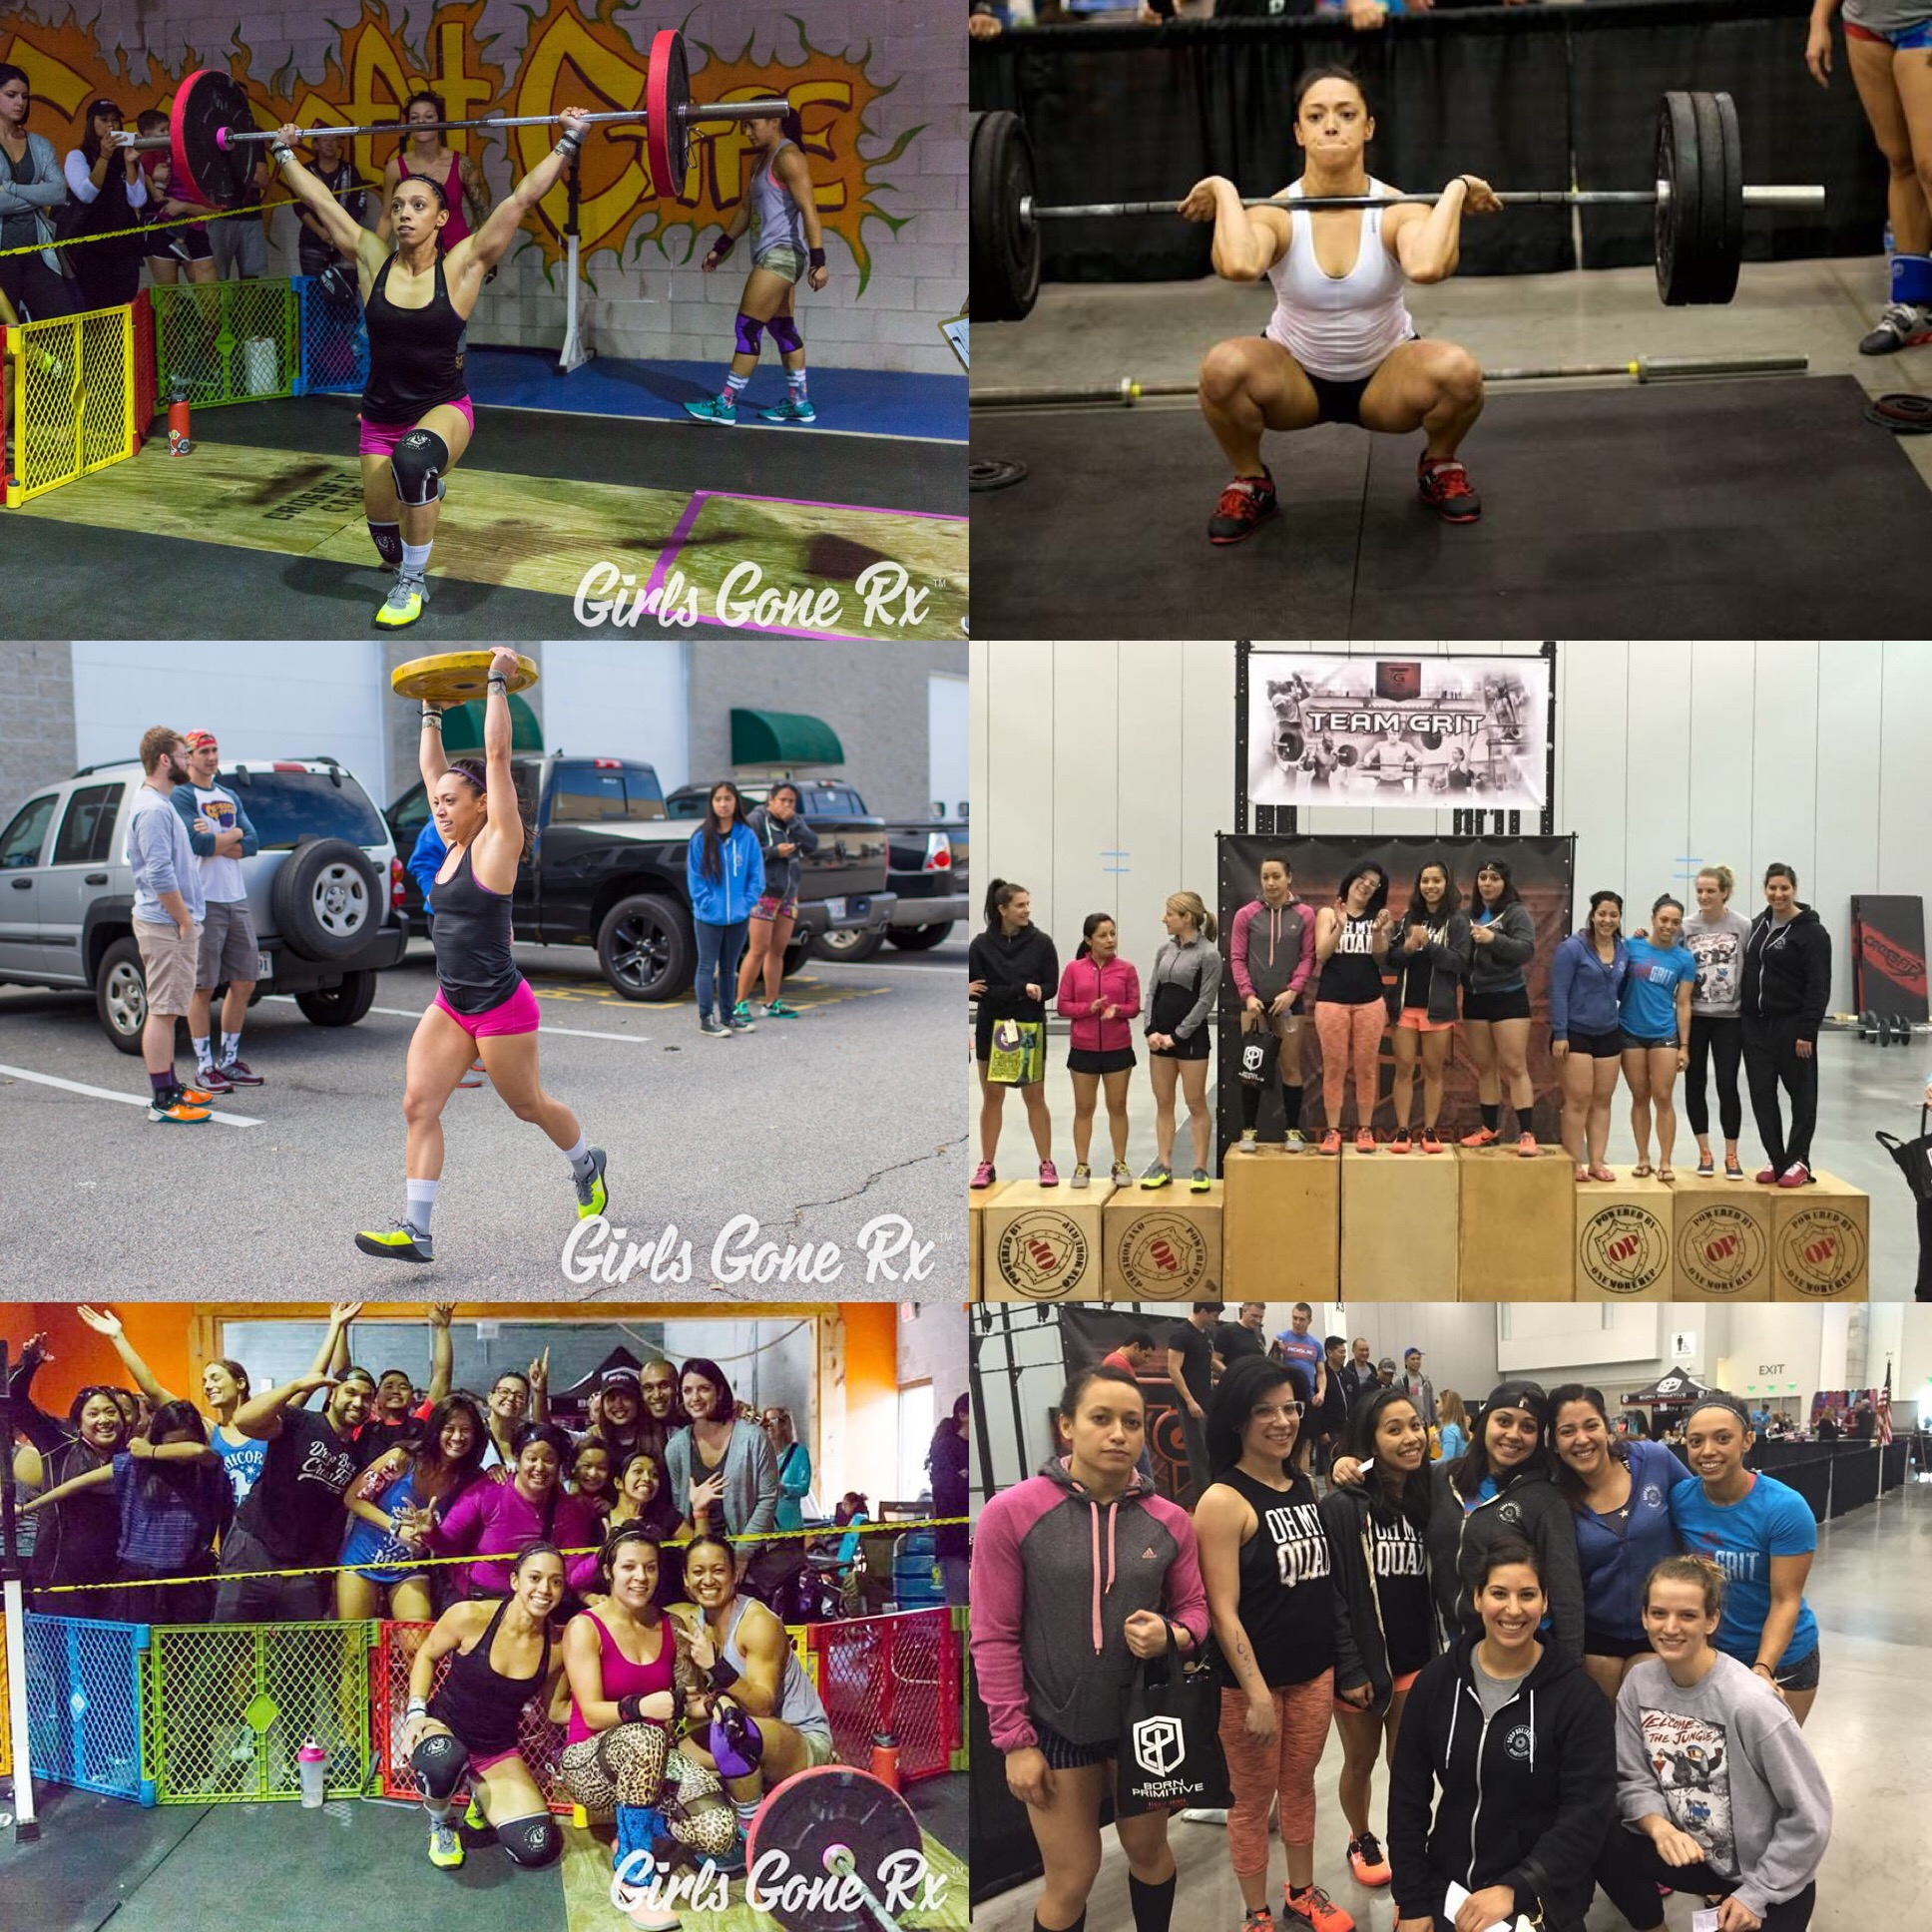 KC has competed in three competitions since starting CrossFit. Pictured: Girls Gone RX & Team Grit